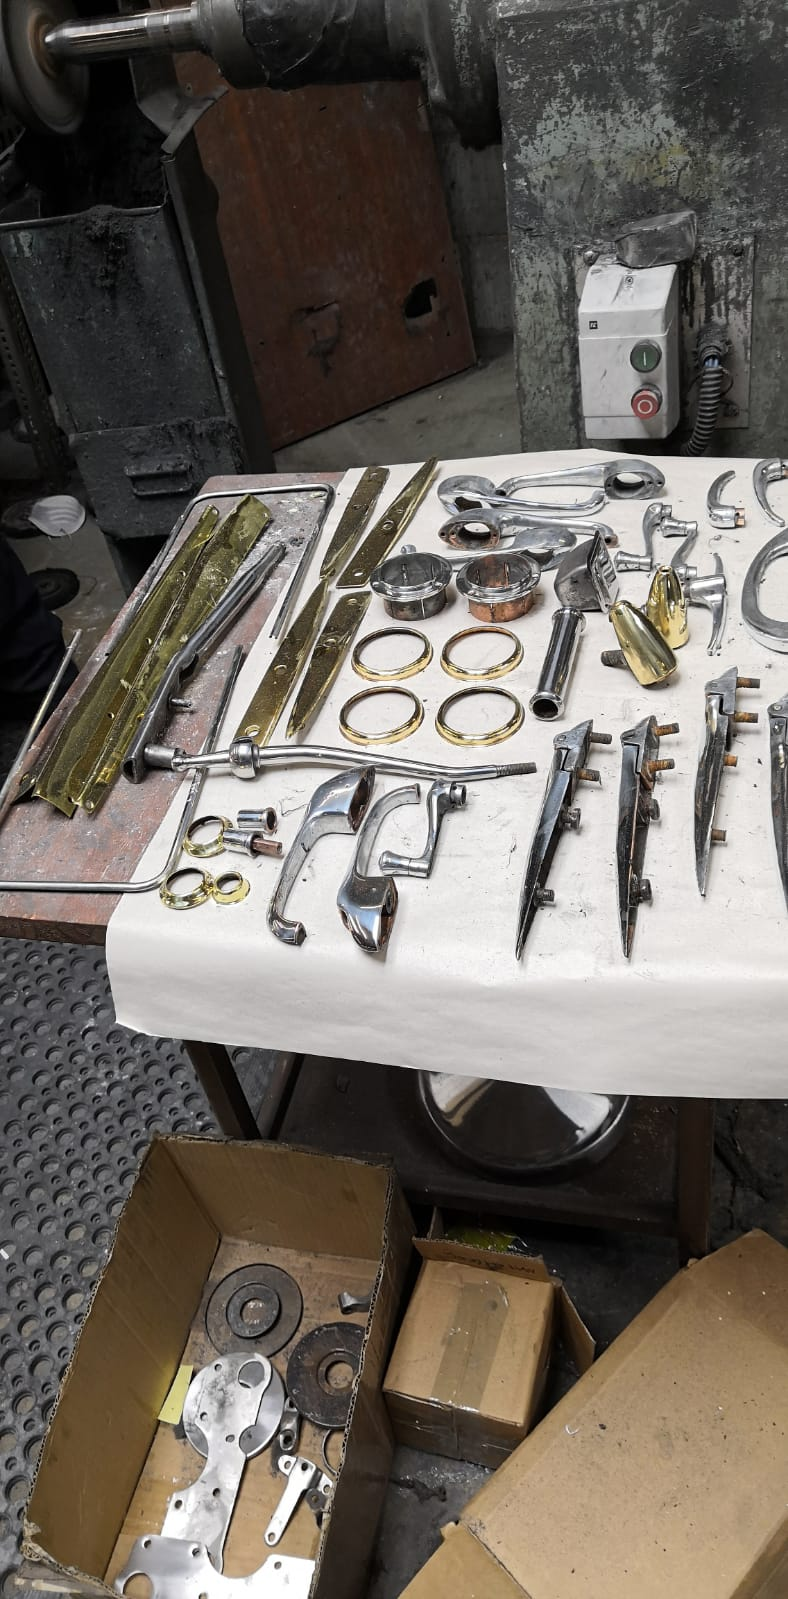 Chroming various parts